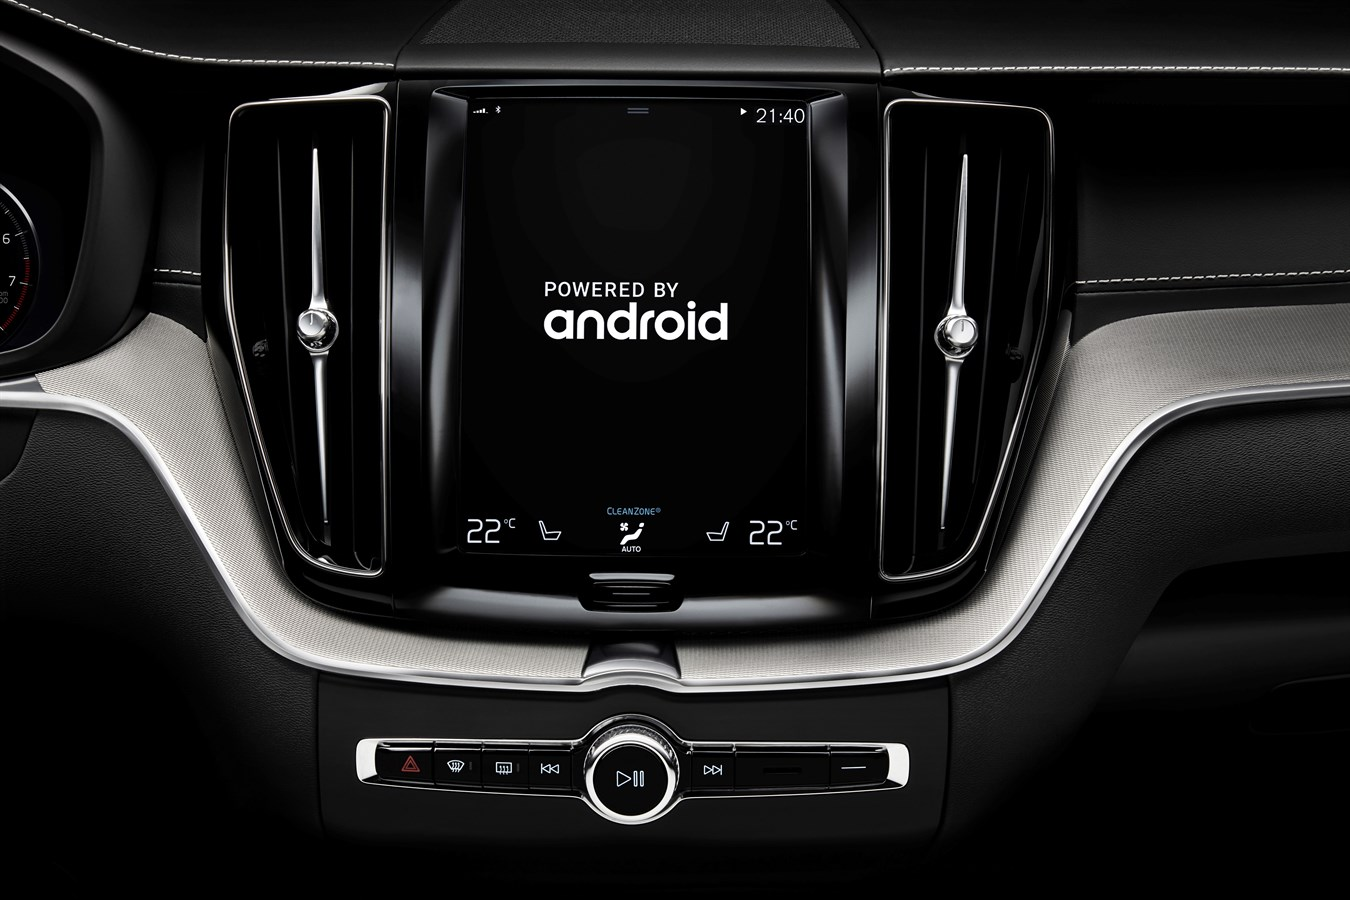 Google Rolling Out a Complete OS Version of Android for Automobiles